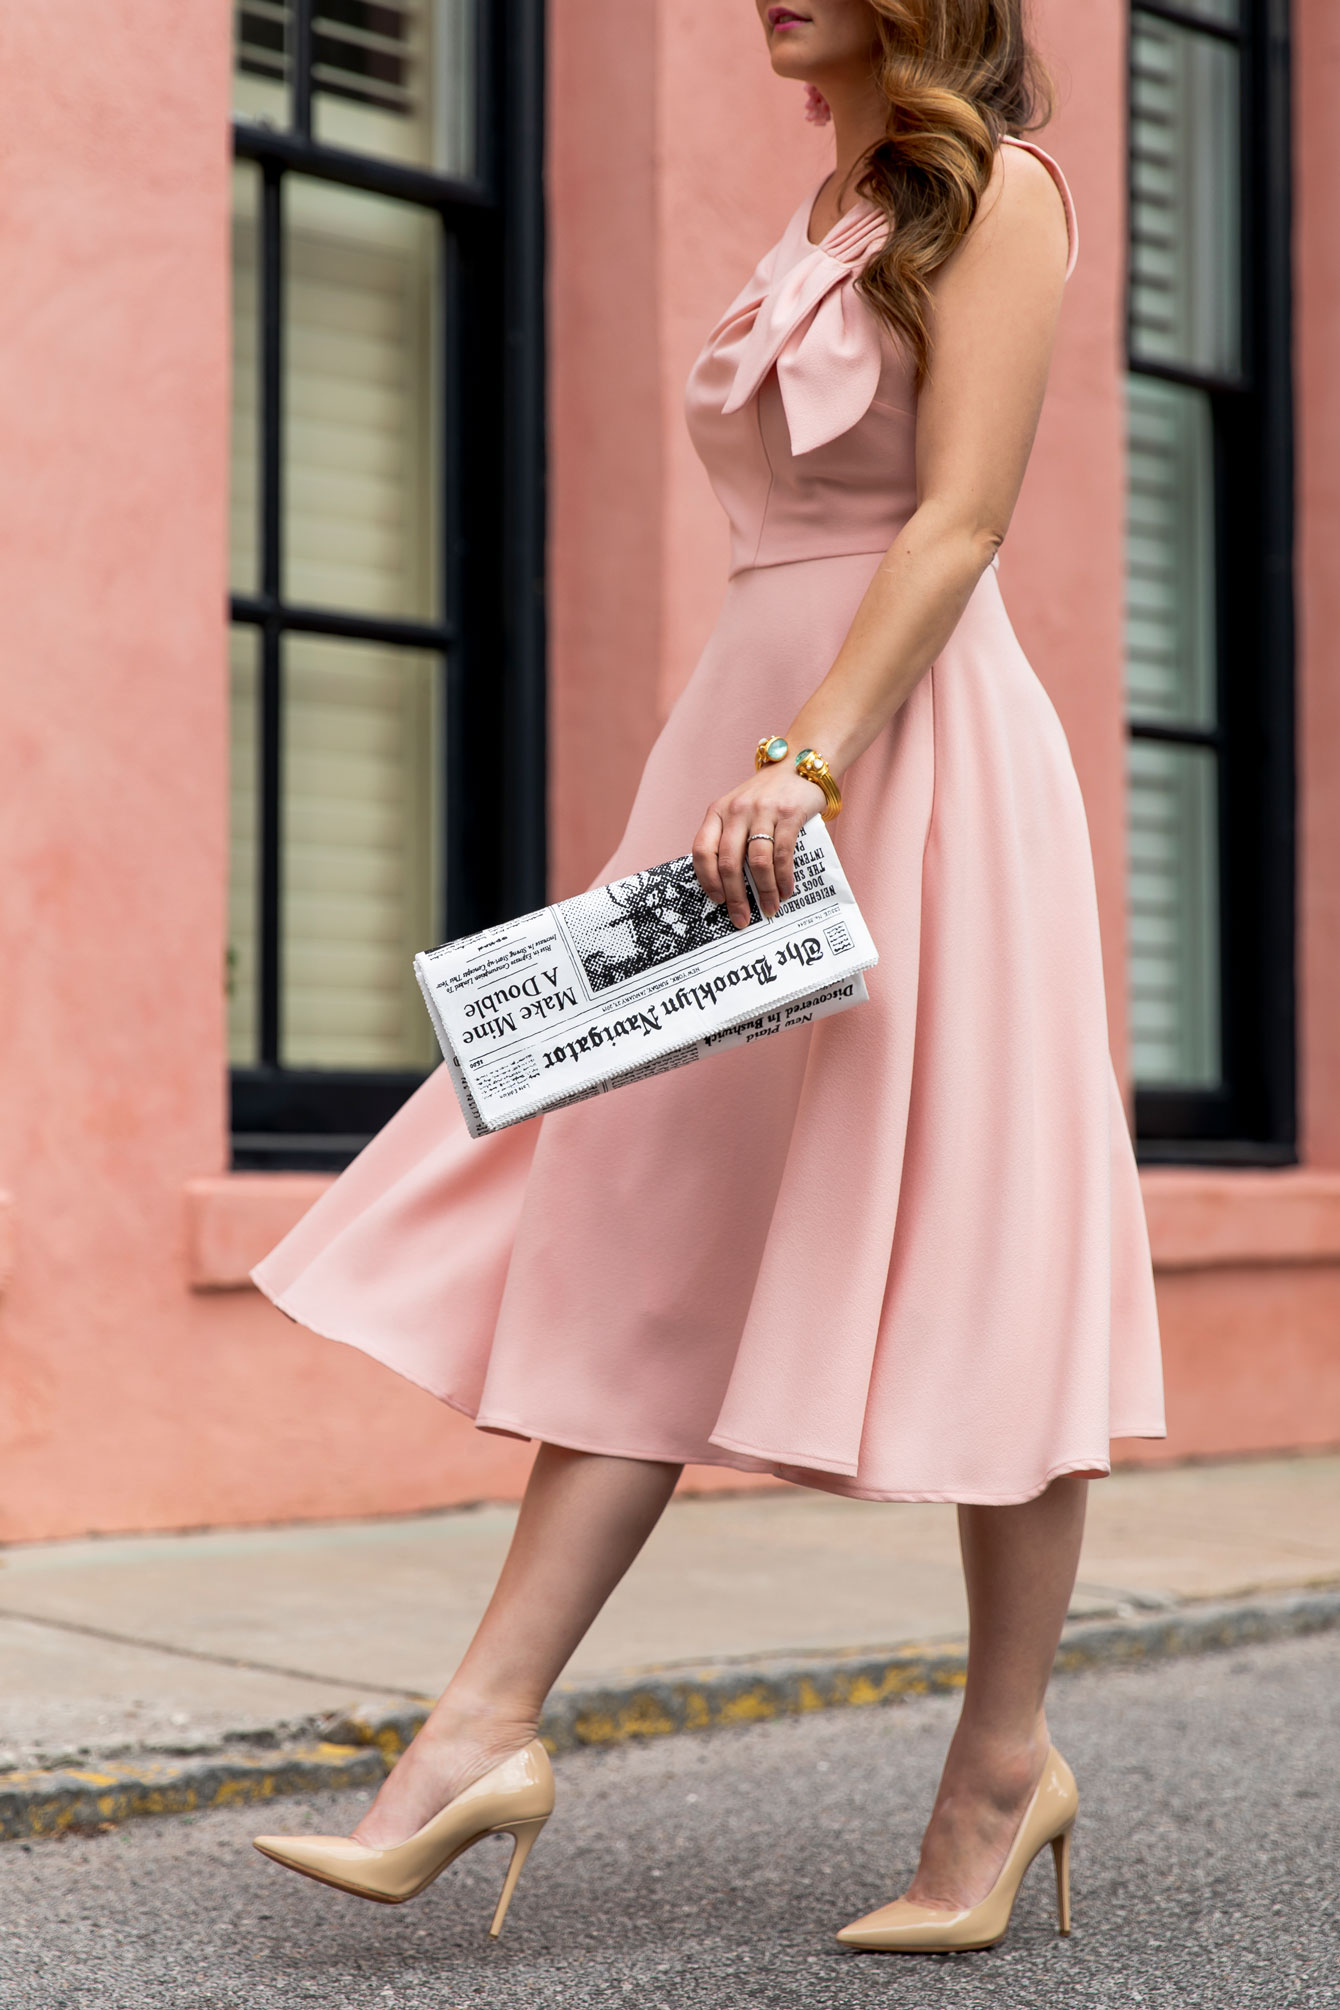 Kate Spade Newspaper Clutch